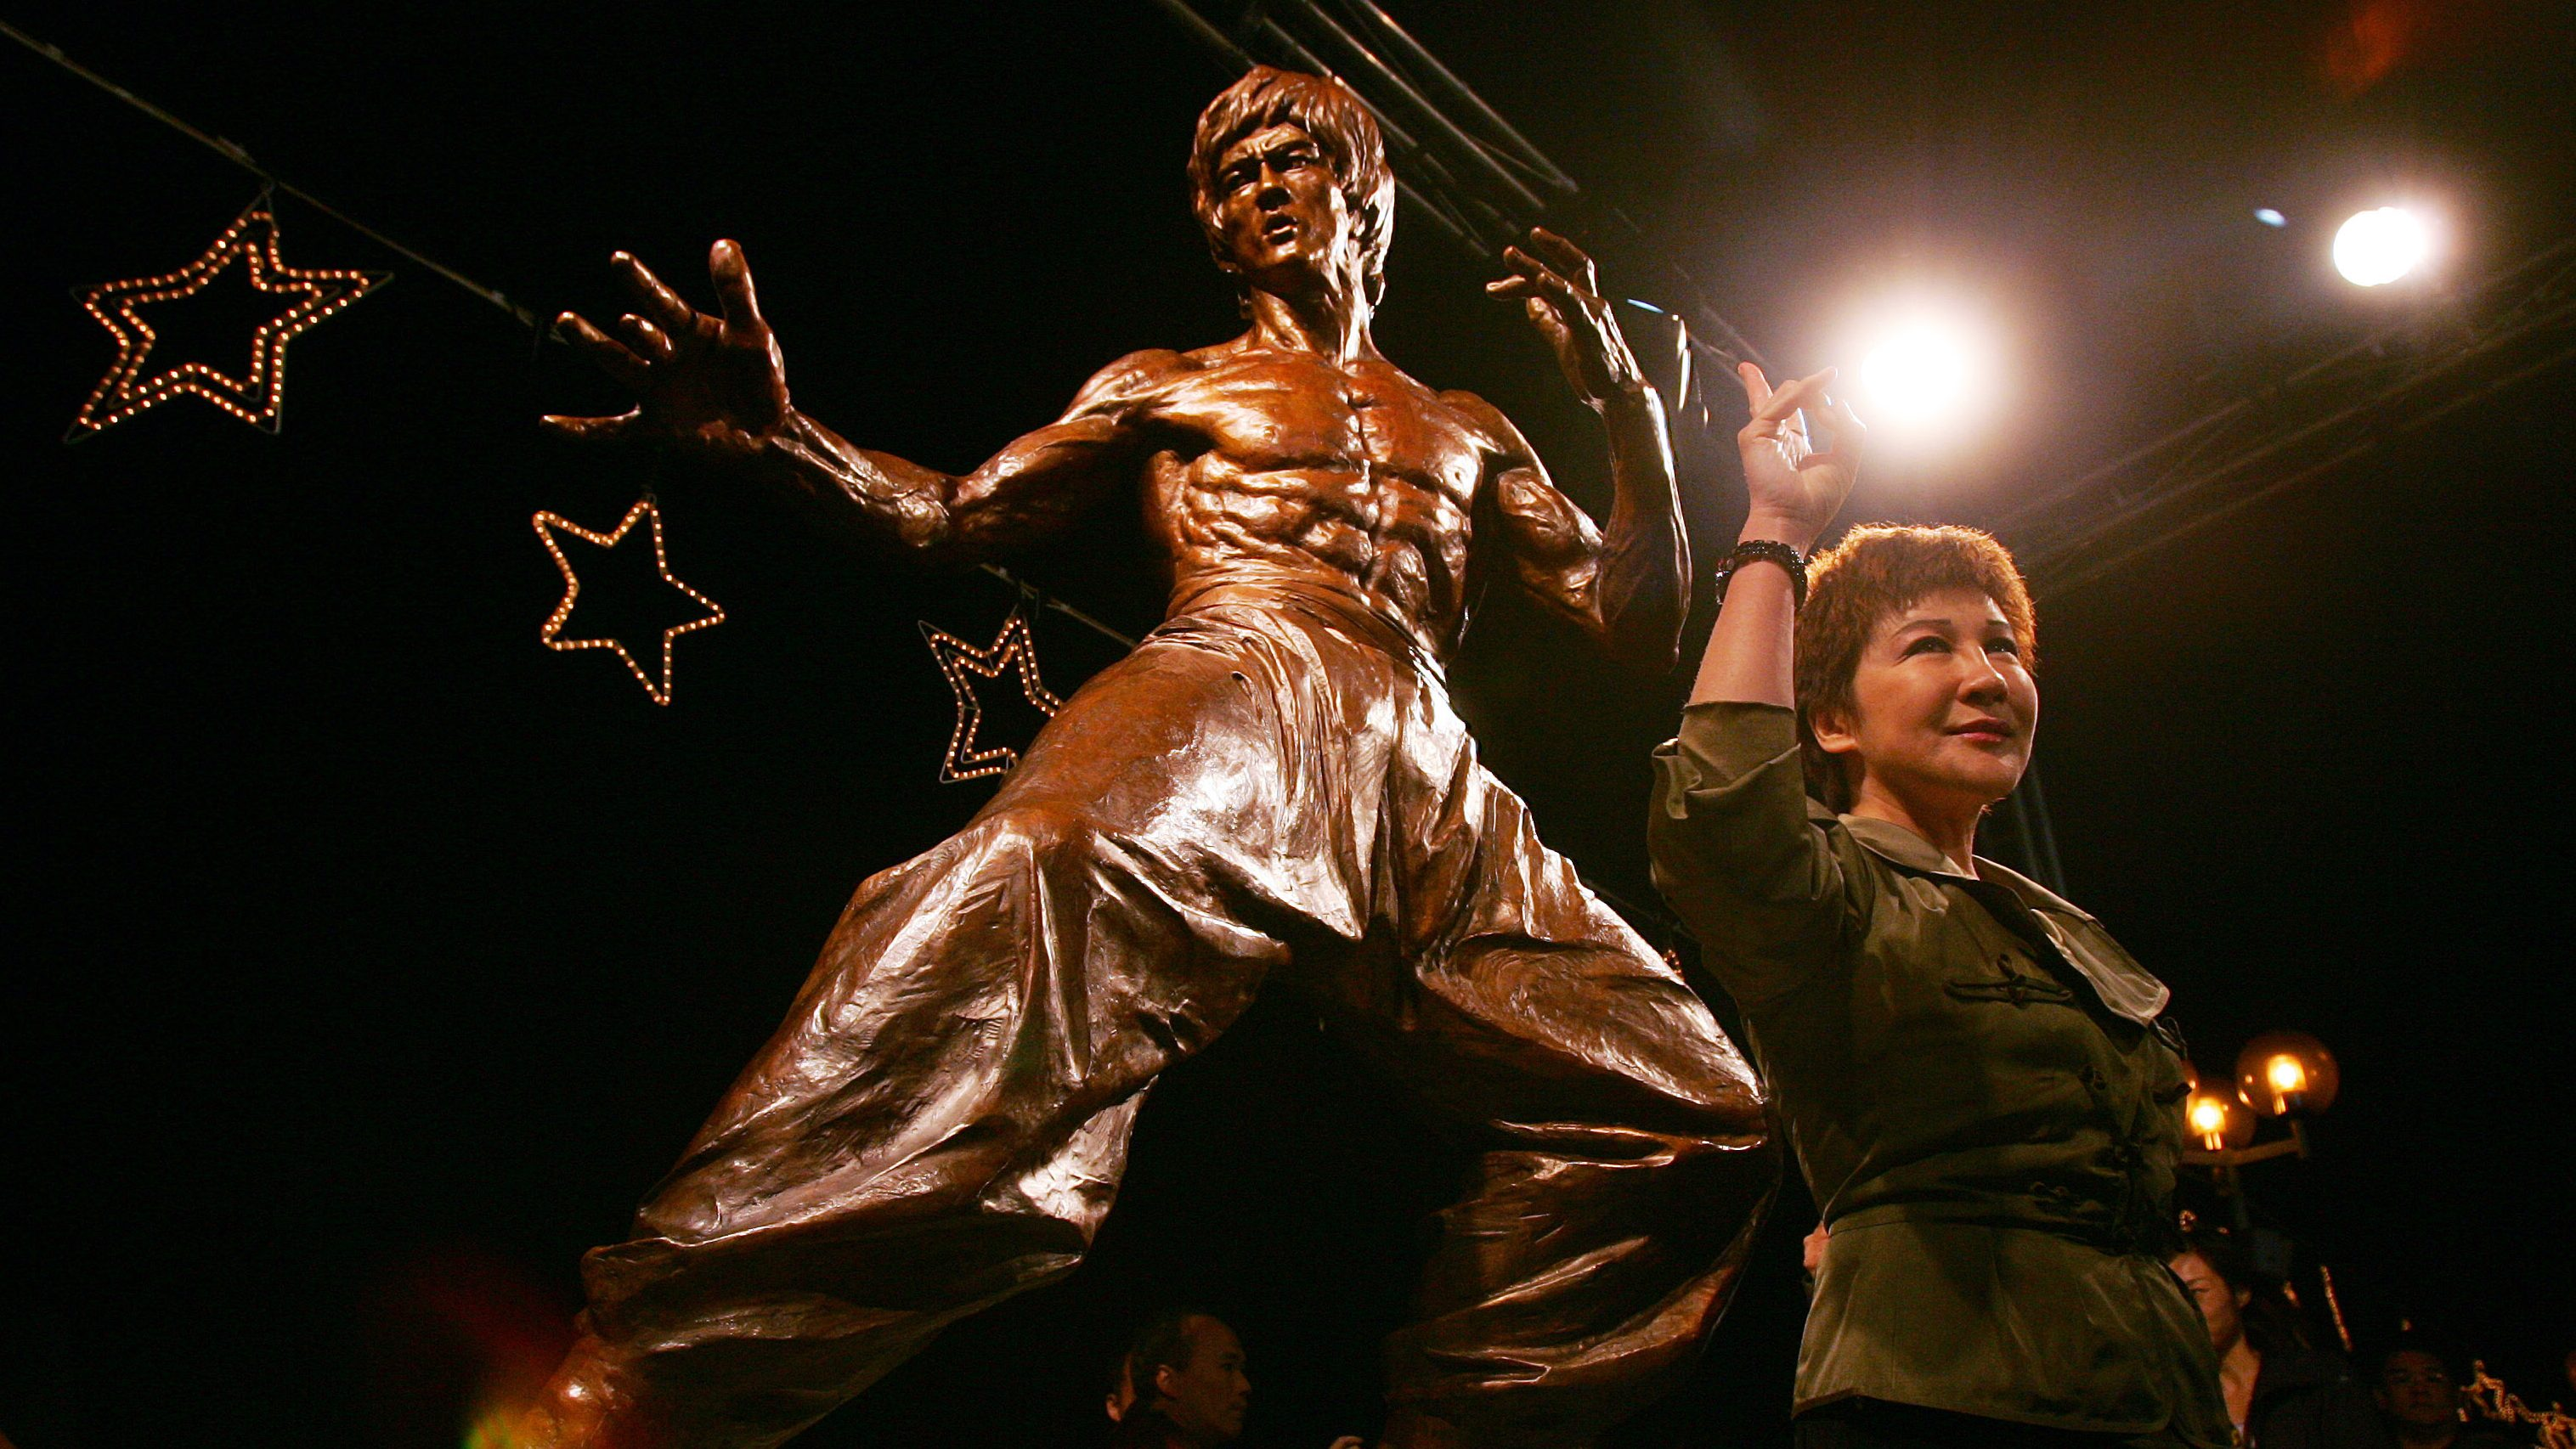 Former Hong Kong actress Betty Ting poses in front of the statue of Hong Kong martial arts movie star Bruce Lee during the statue's unveiling ceremony, on Lee's 65th birthday, in Hong Kong November 27, 2005. Lee died in Ting's home in 1973. Ting will publish a book on the story of Bruce Lee, in future.